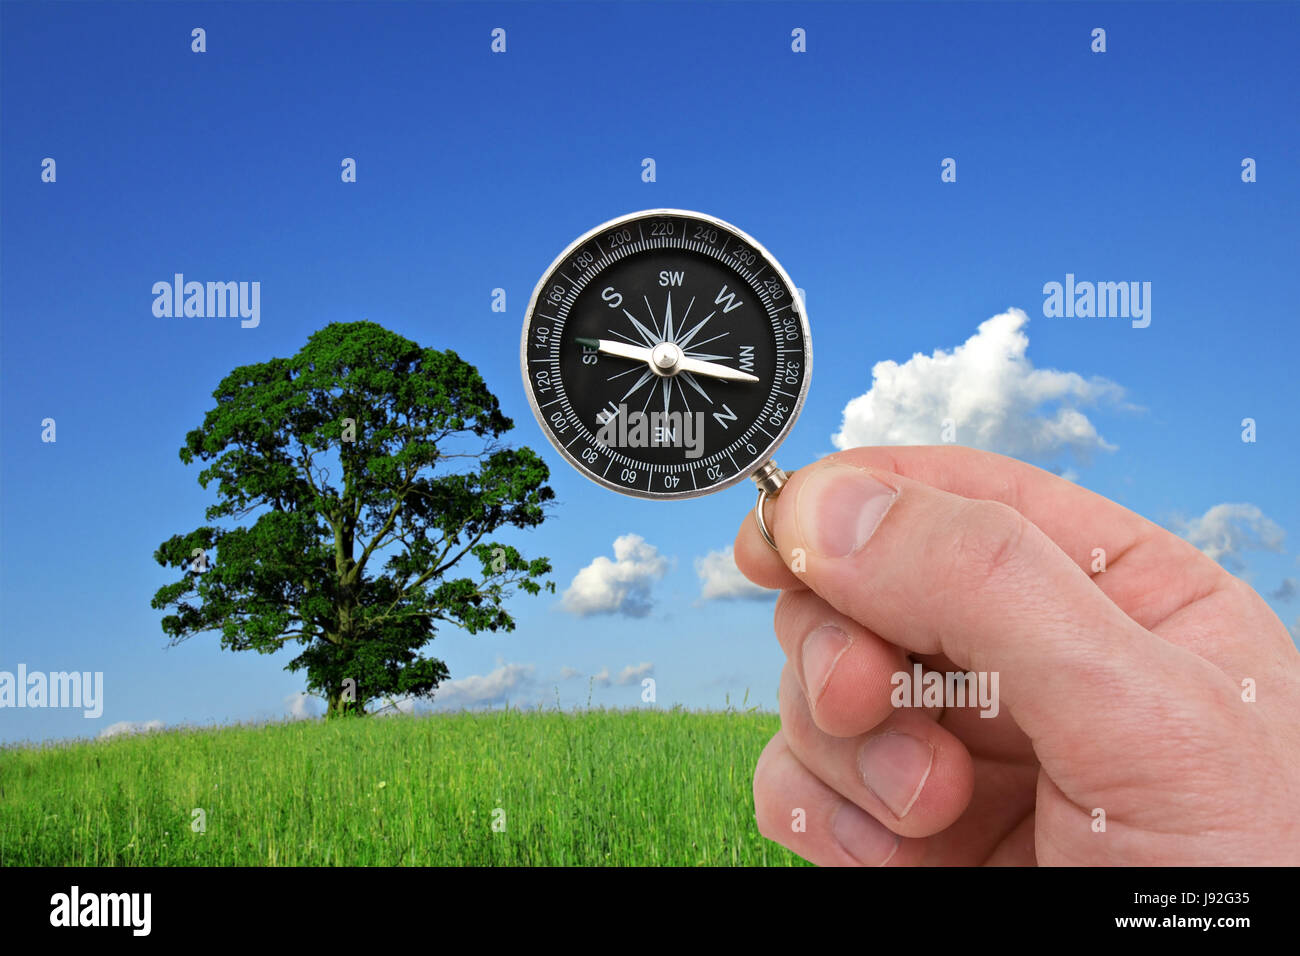 travel, adventure, direction, cartography, rural, peasant, nature, compass, - Stock Image